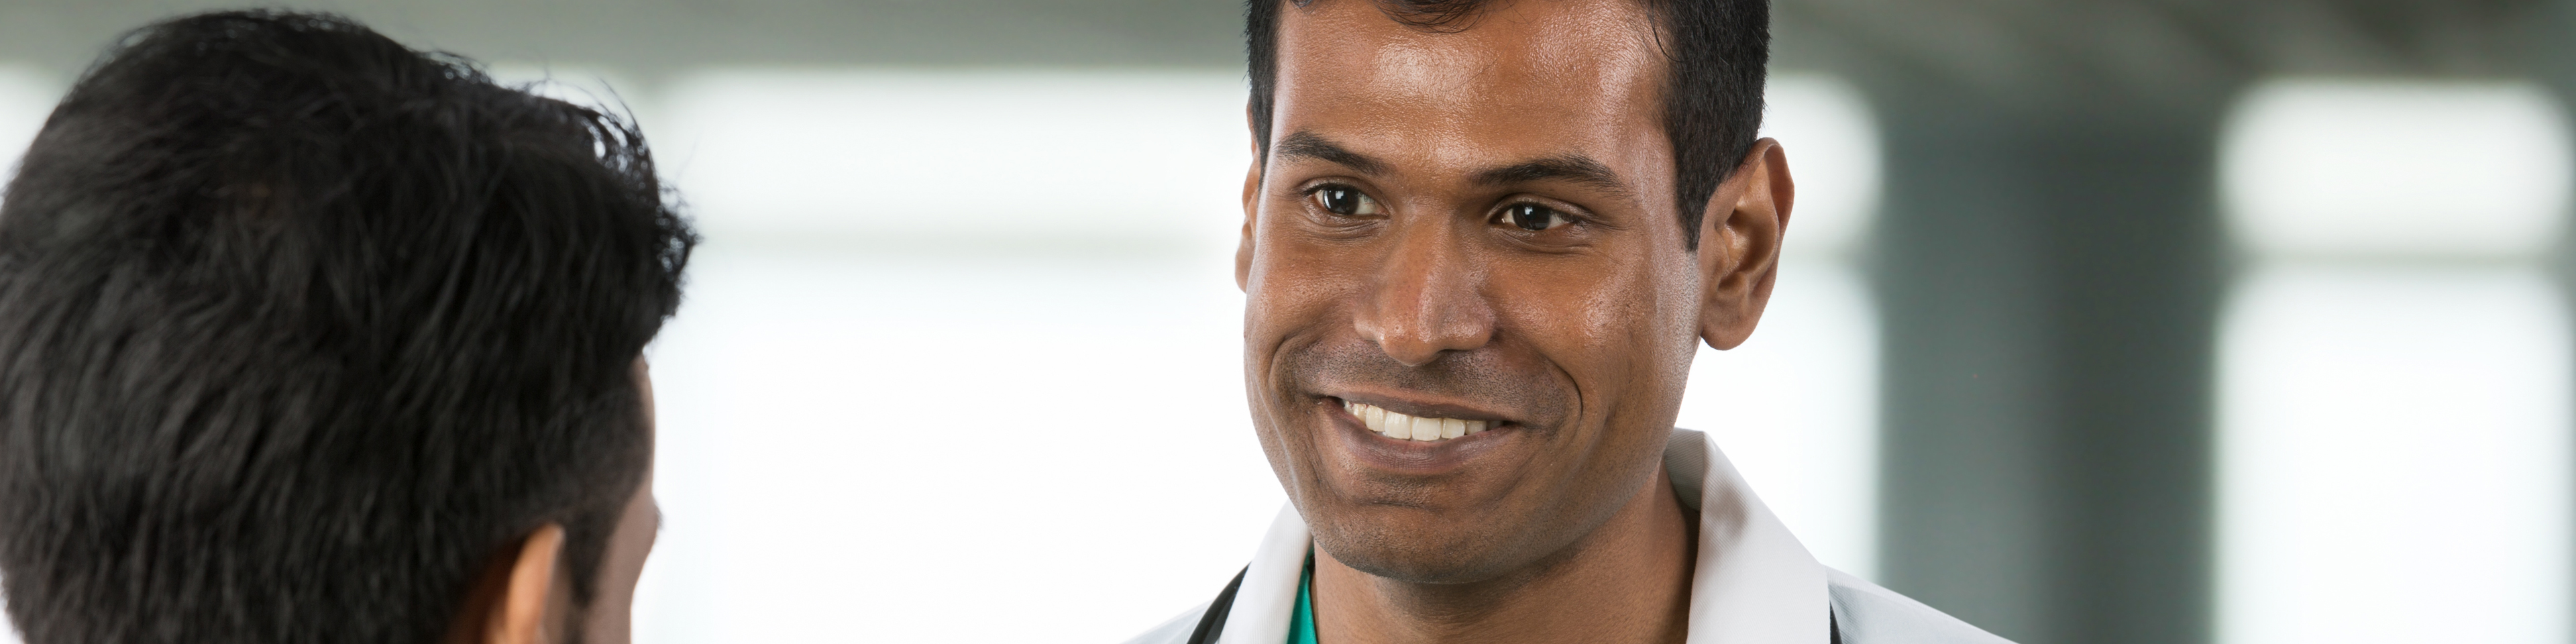 Doctor standing with and smiling at patient in open hospital area